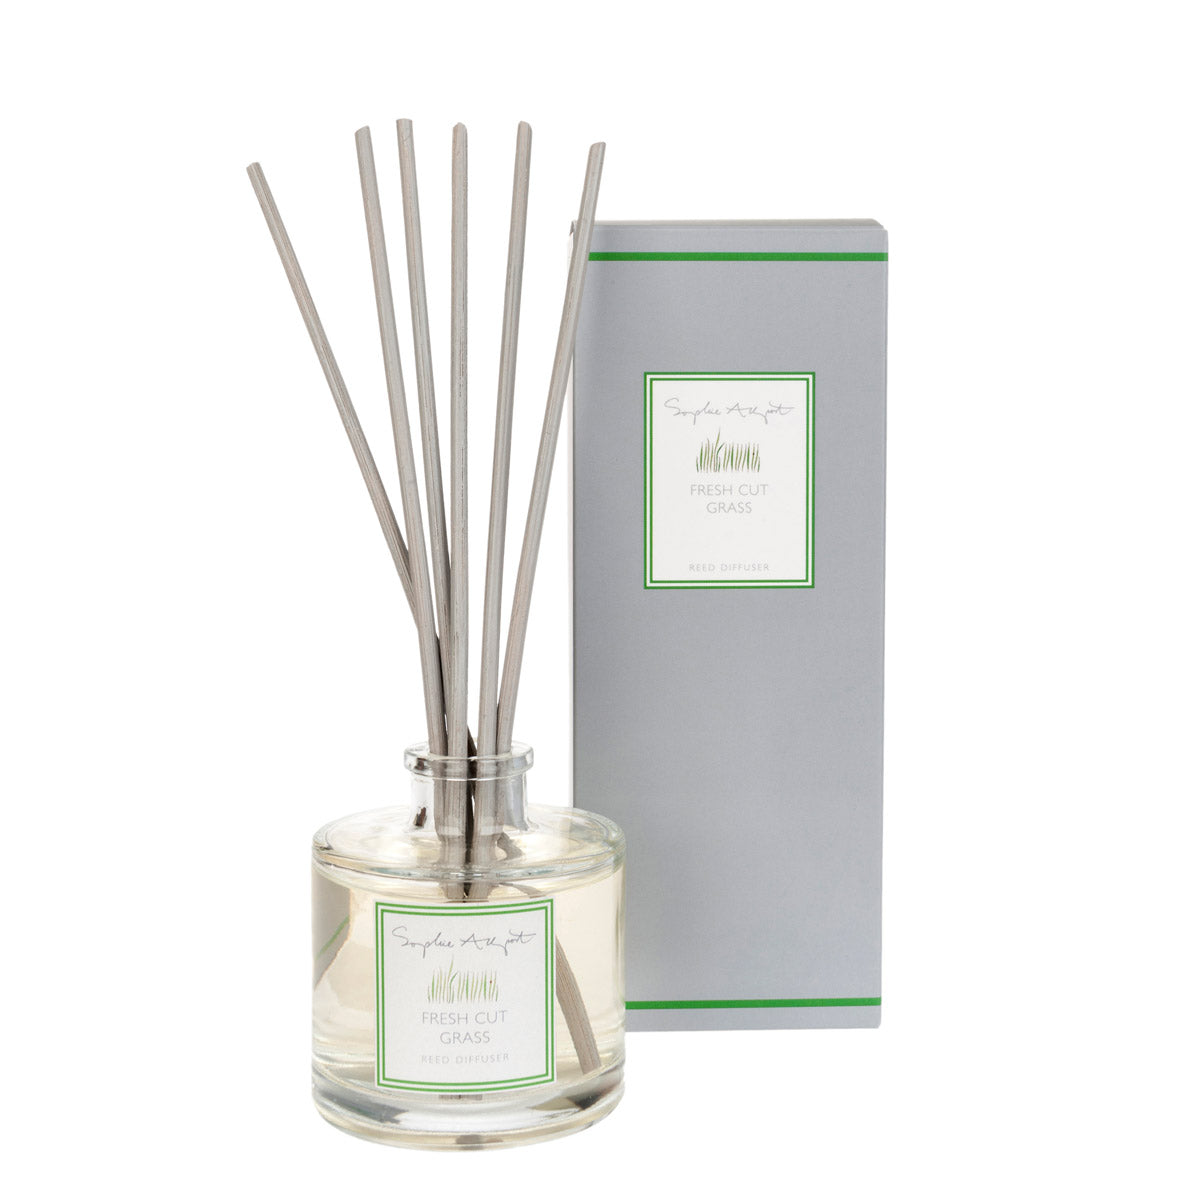 Fresh Cut Grass Scented Reed Diffuser